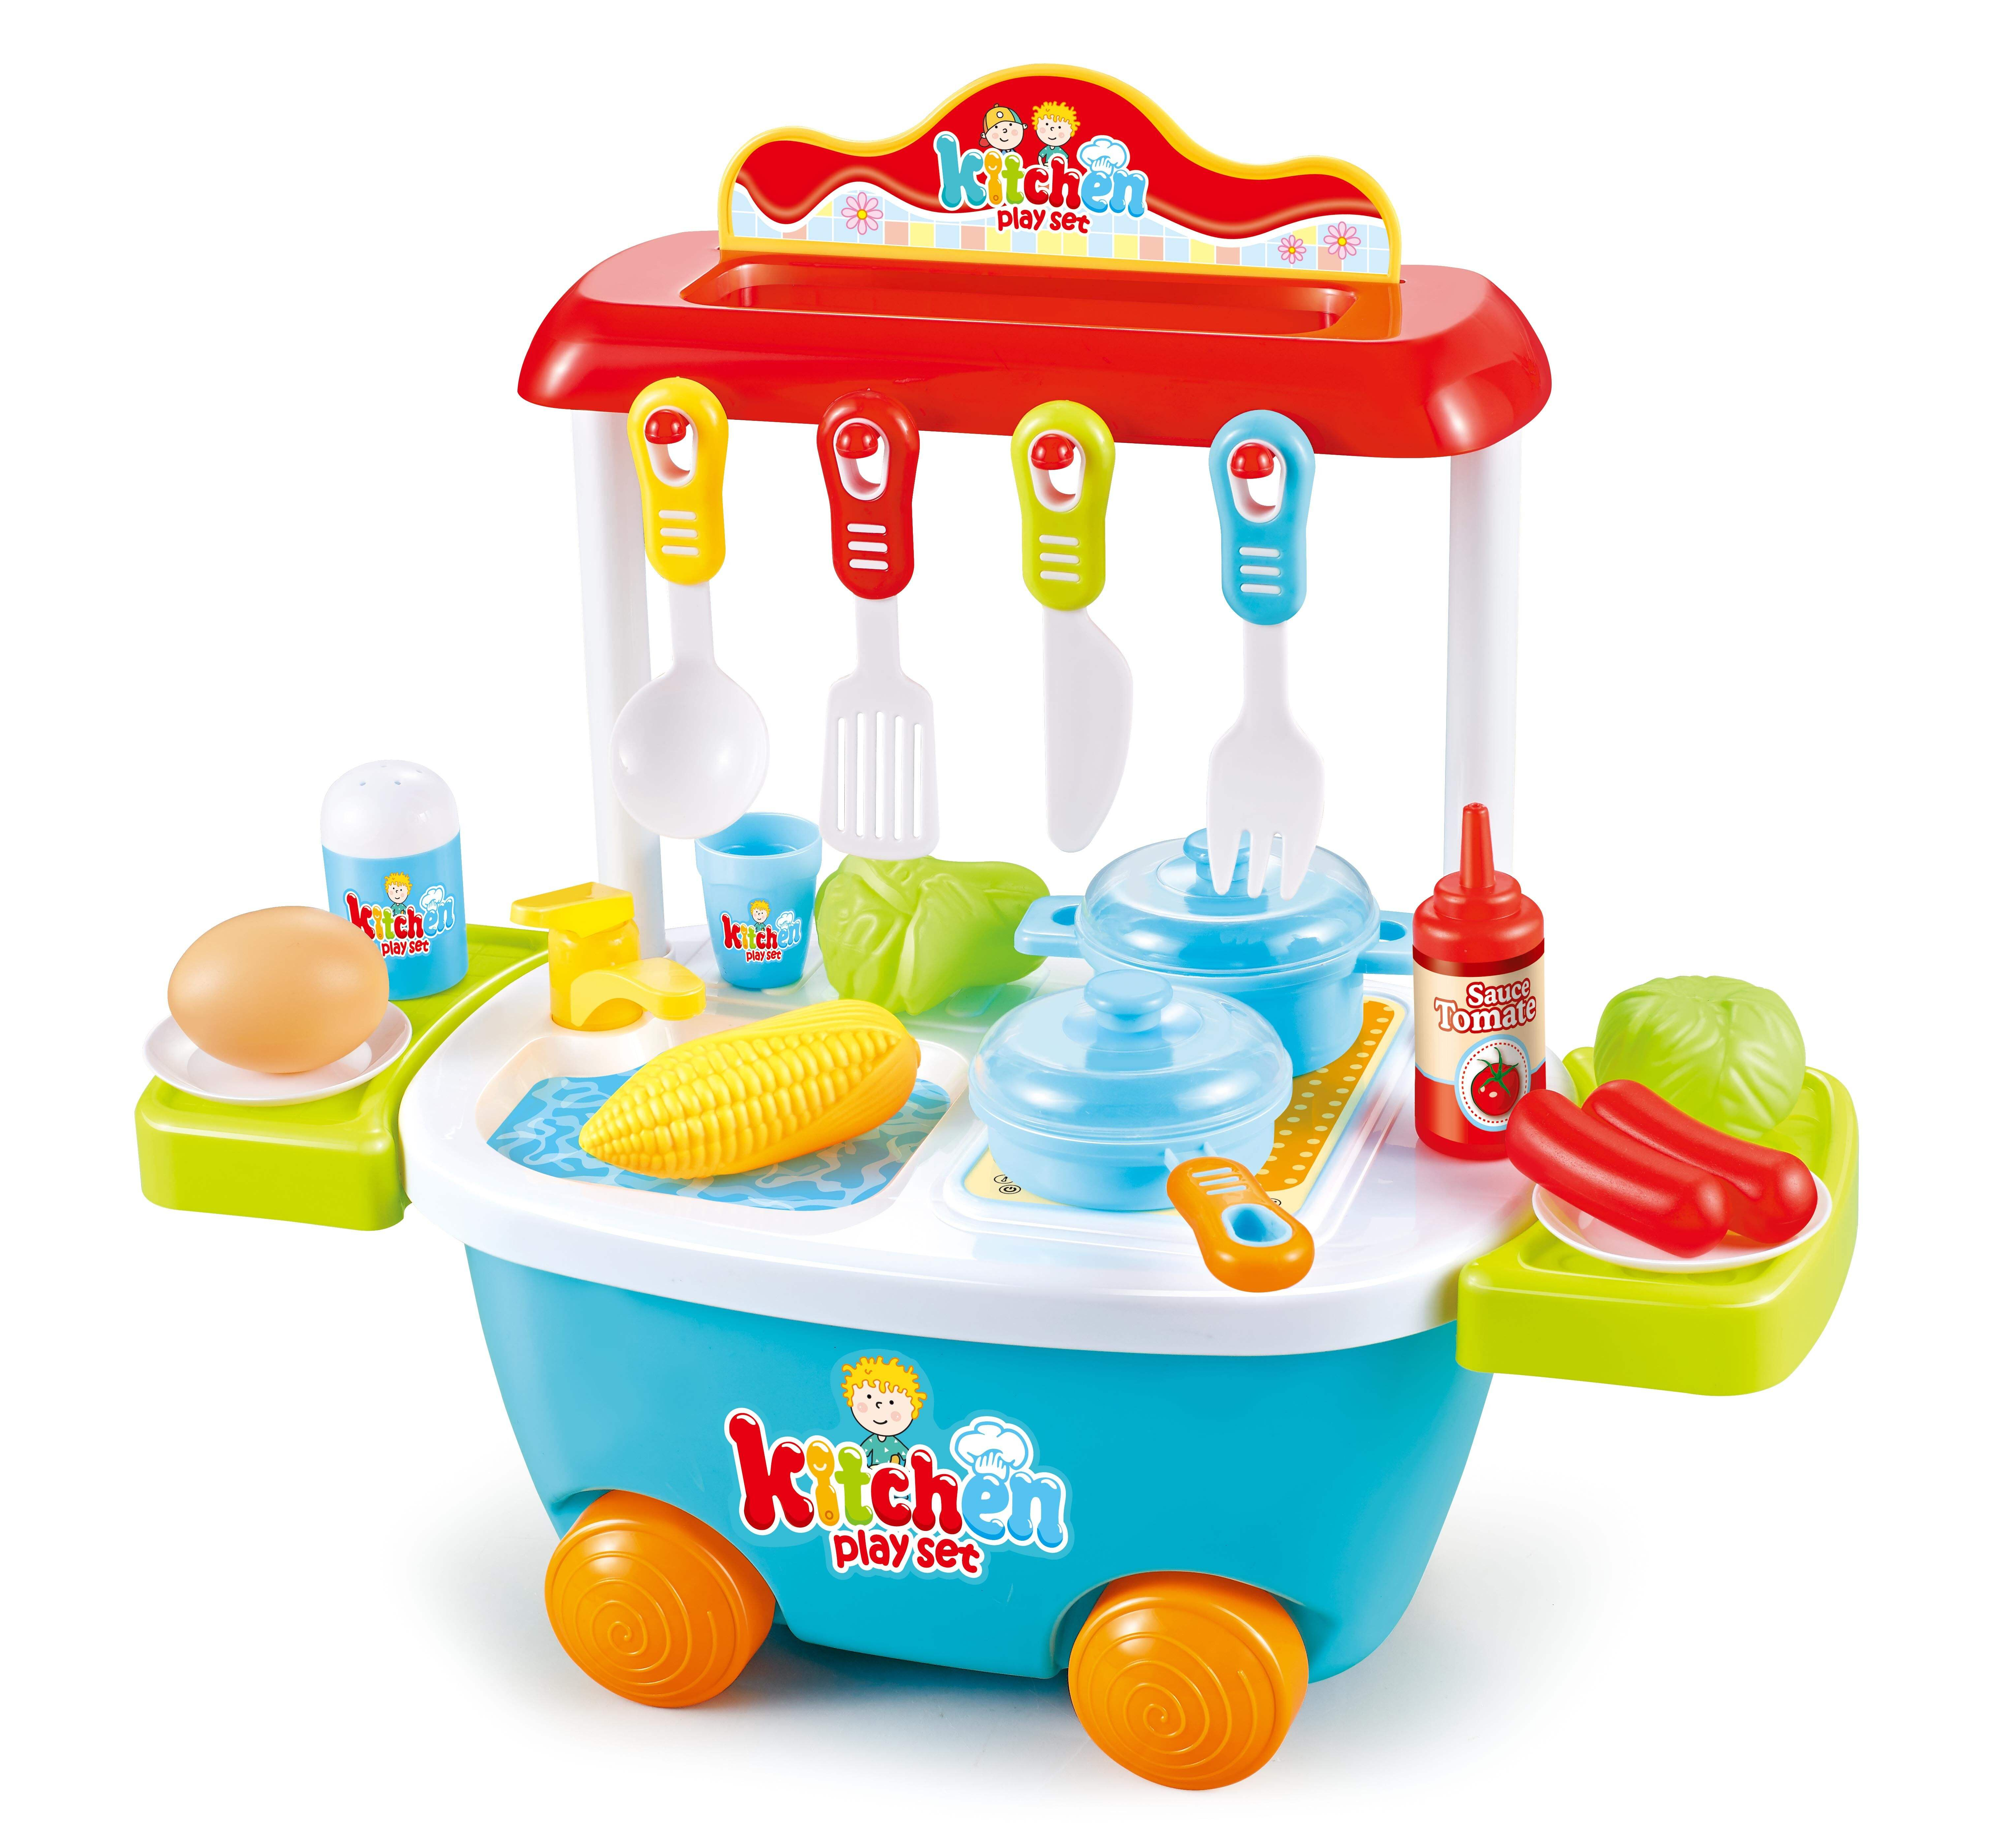 Playing [ Set Toy ] 2020 Hot Selling Popular Plastic Children Kitchen Play Set Toy For Kids